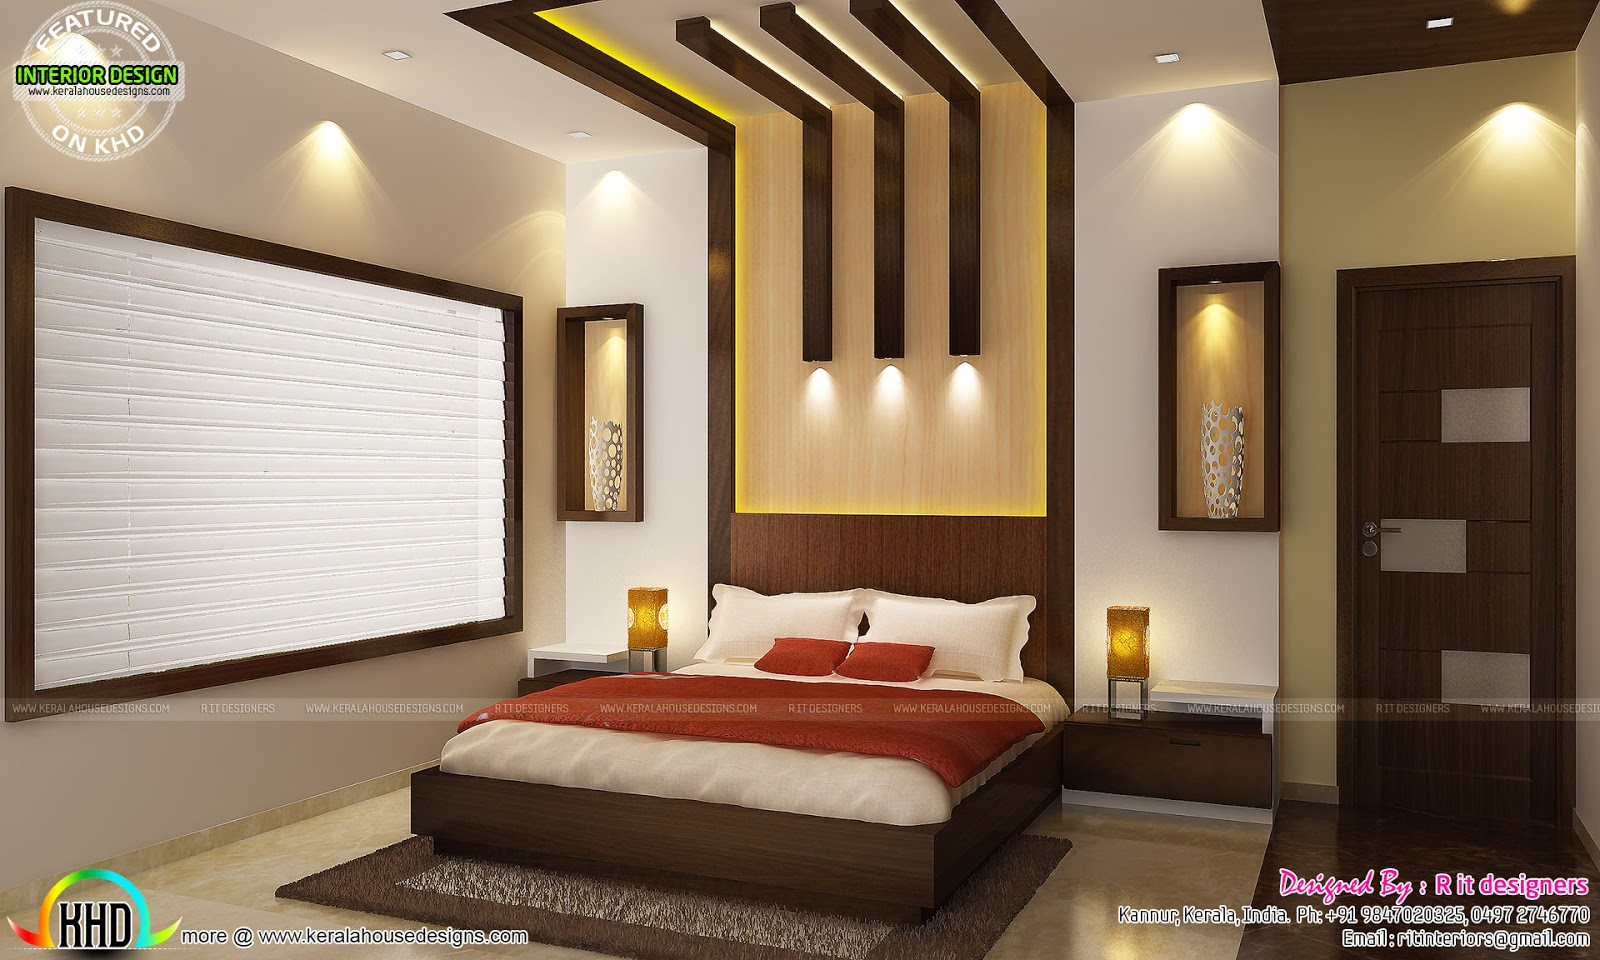 Kitchen living bedroom dining interior decor kerala for Home interior bedroom